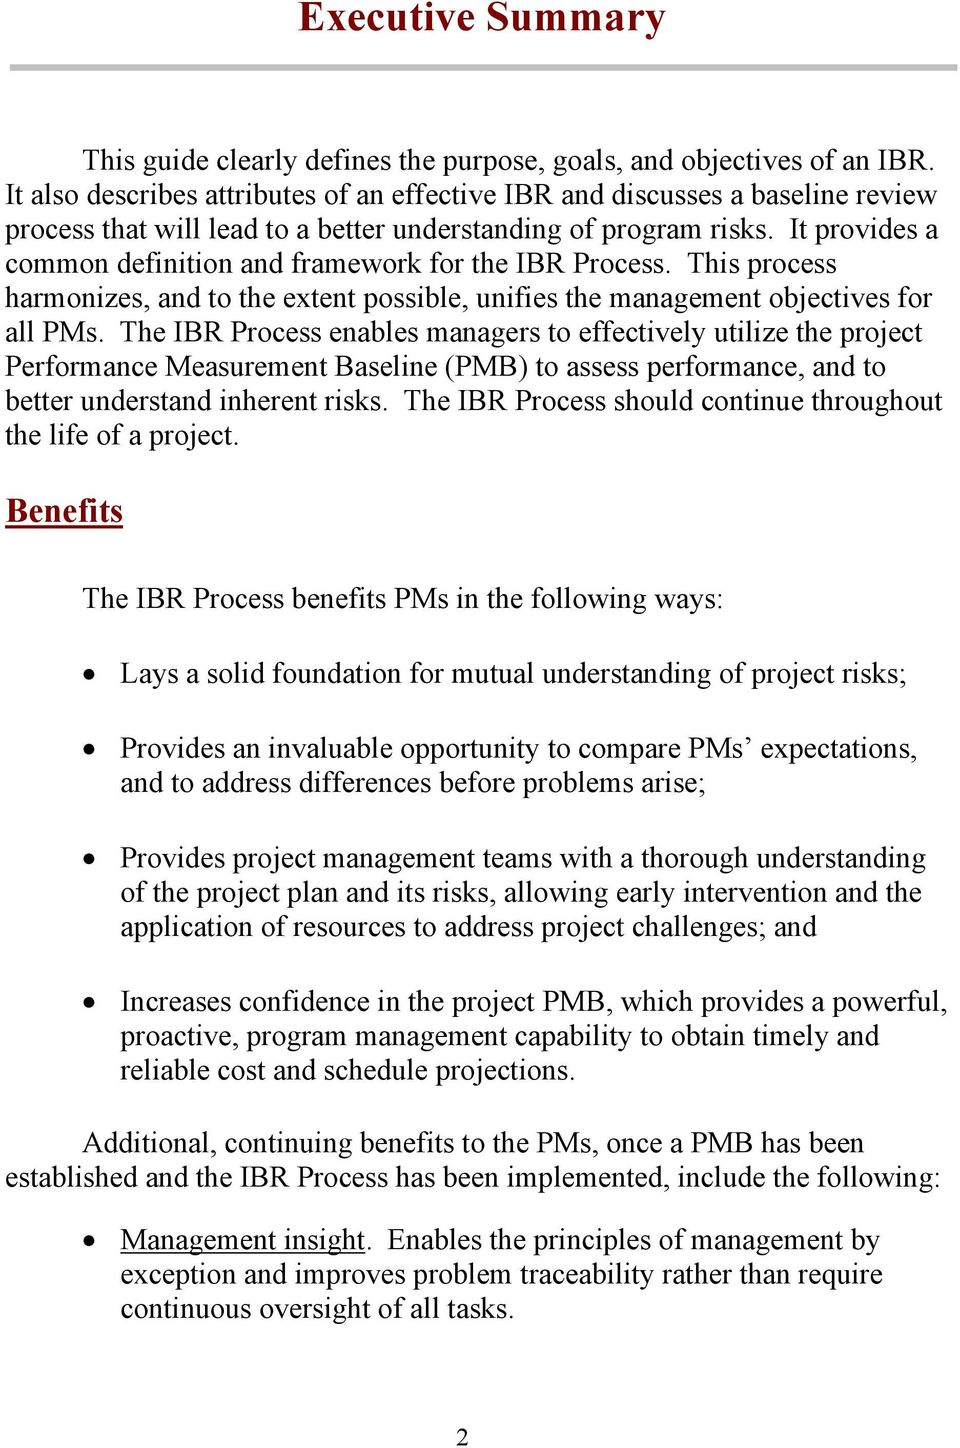 It provides a common definition and framework for the IBR Process. This process harmonizes, and to the extent possible, unifies the management objectives for all PMs.